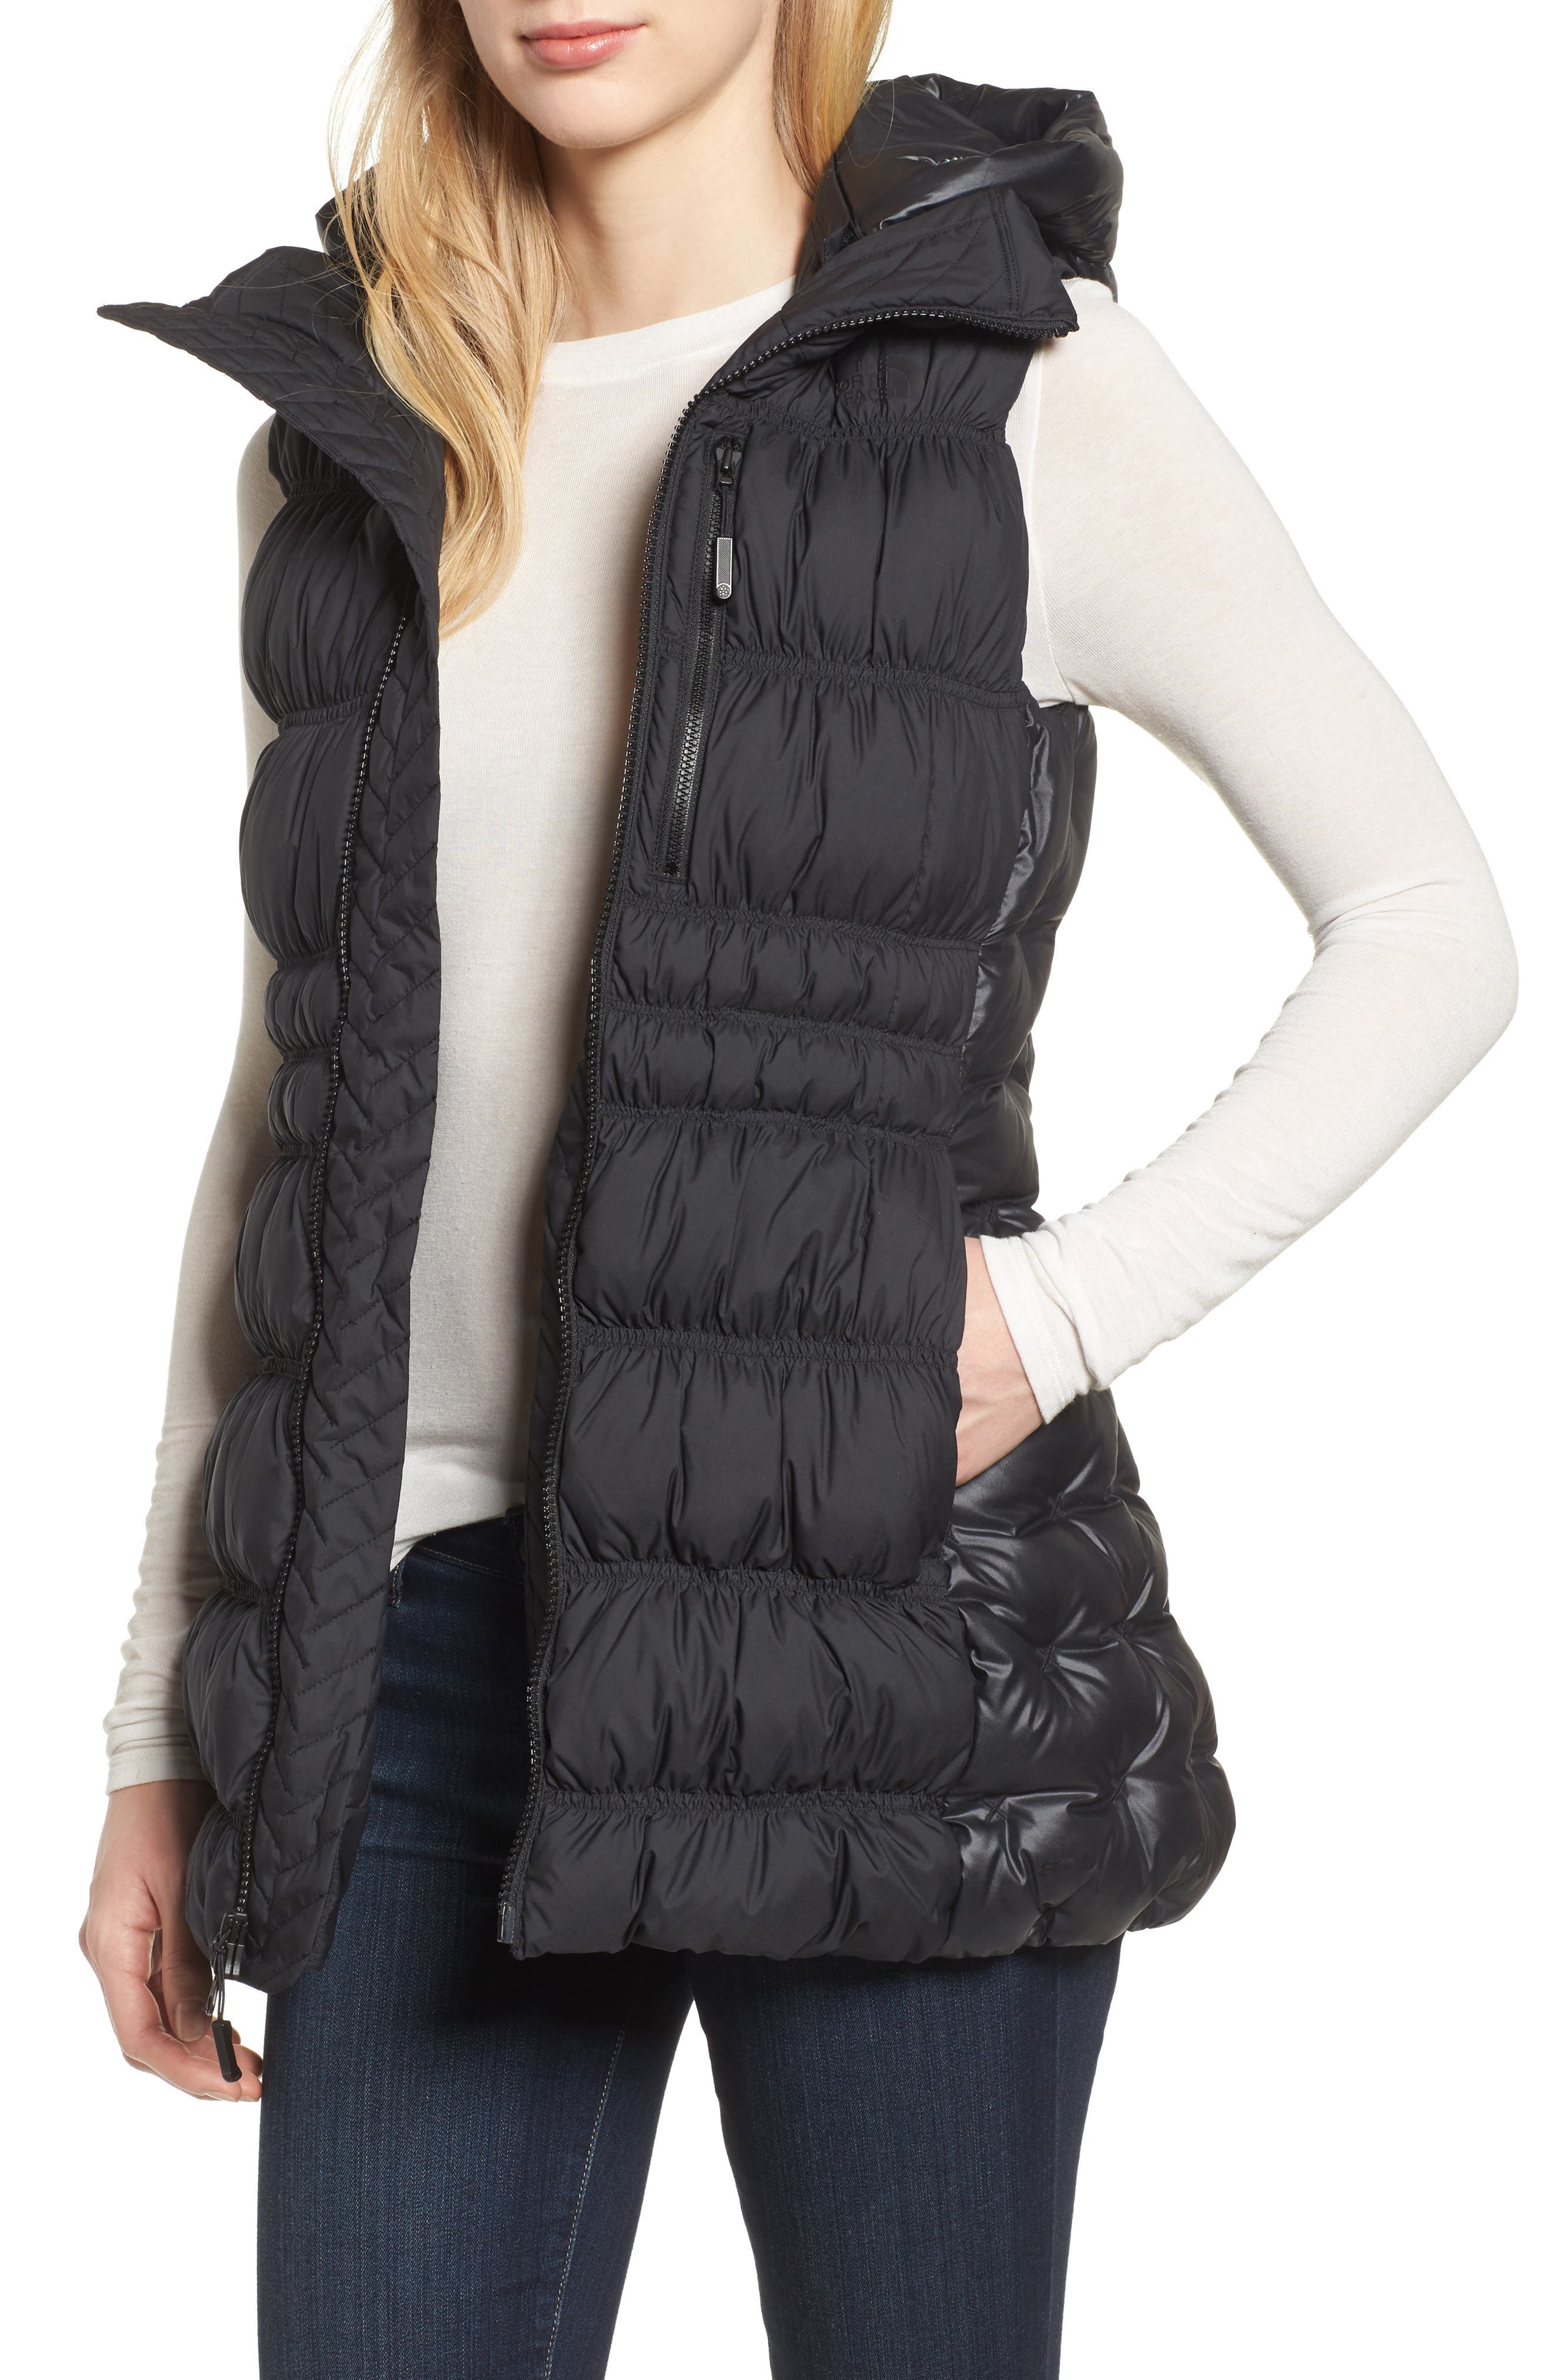 Cryos 800-Fill-Power Down Vest,                         Main,                         color, Black